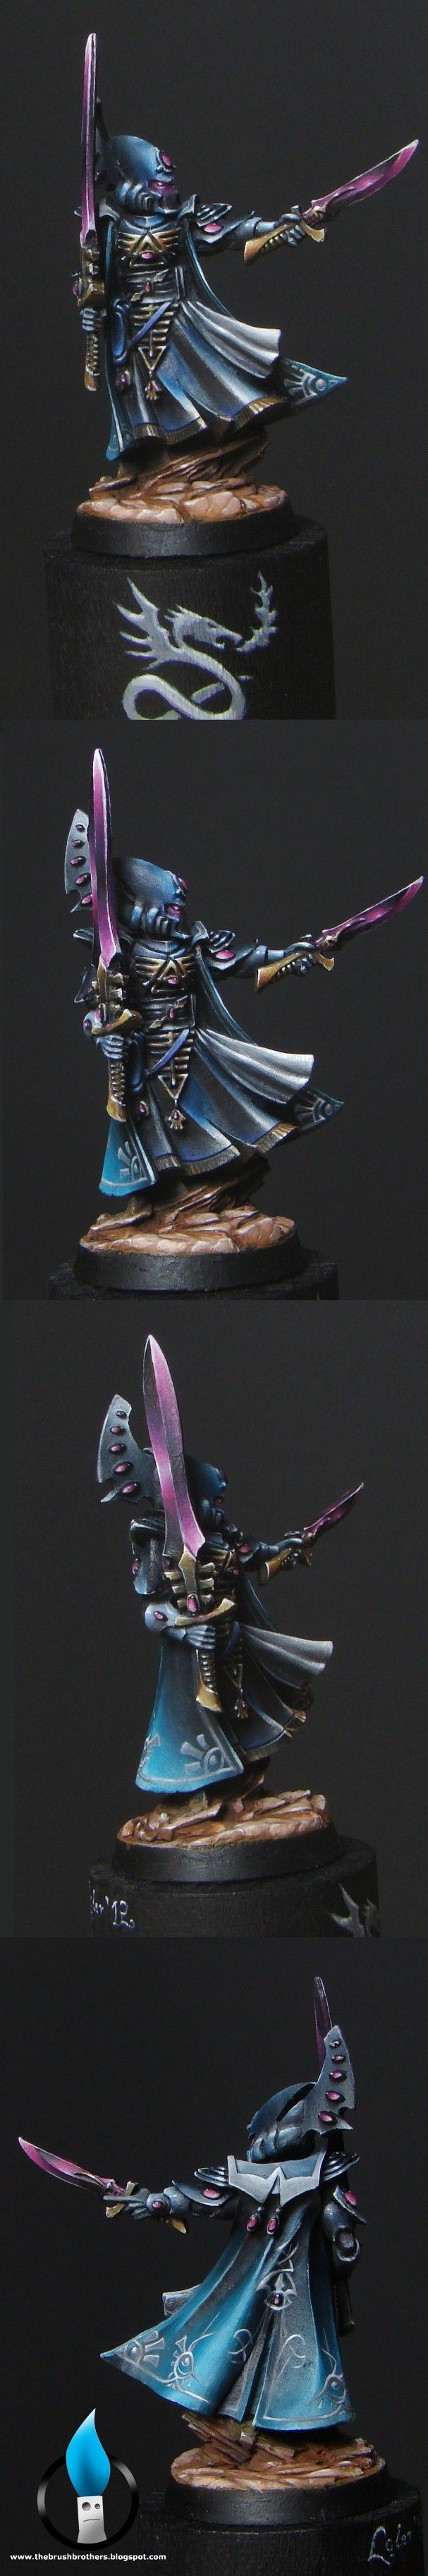 "Warhammer 40k, Eldar Farseer. Great shading and ""non-metallic-metals"" painting!"